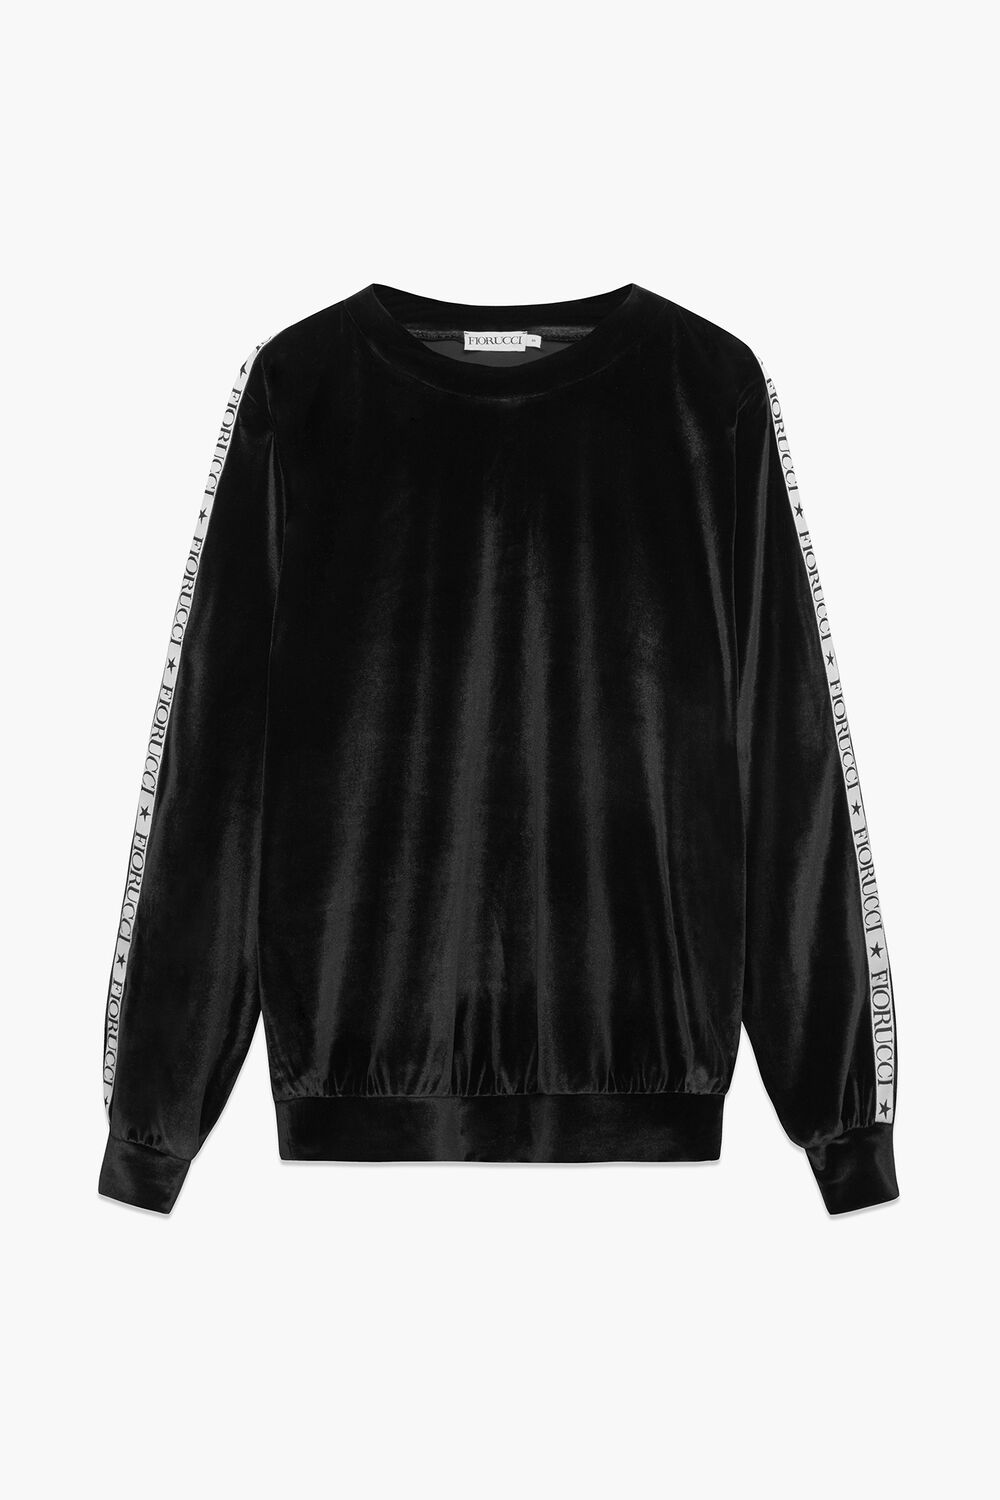 Velour Top Black